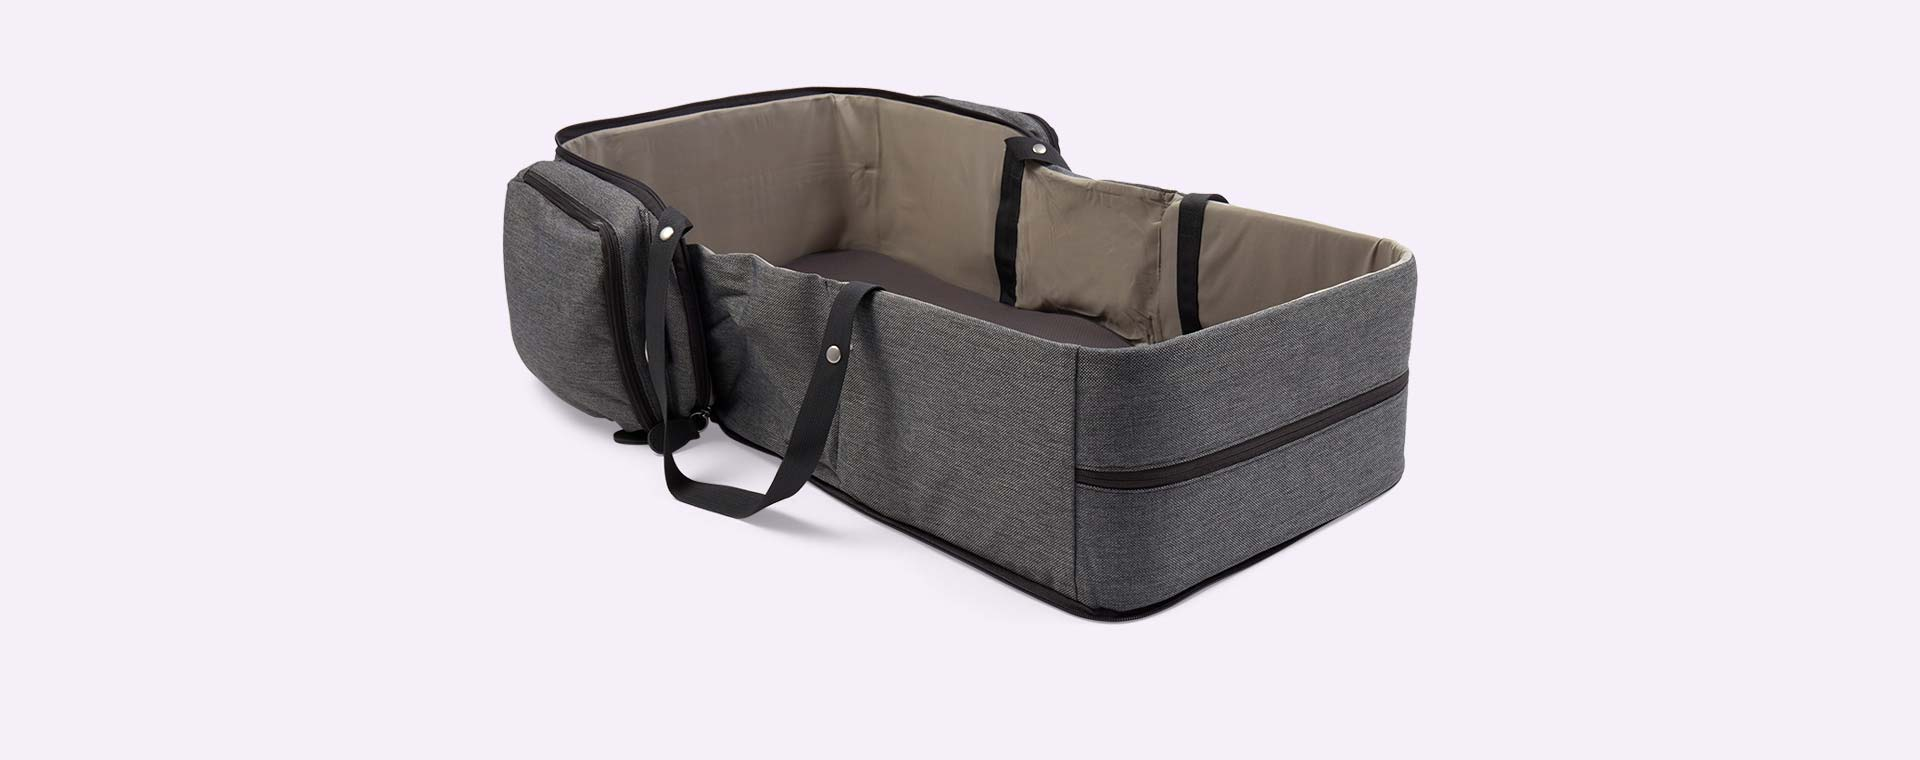 Smokey Grey Babymoov Travelnest Portable Cot